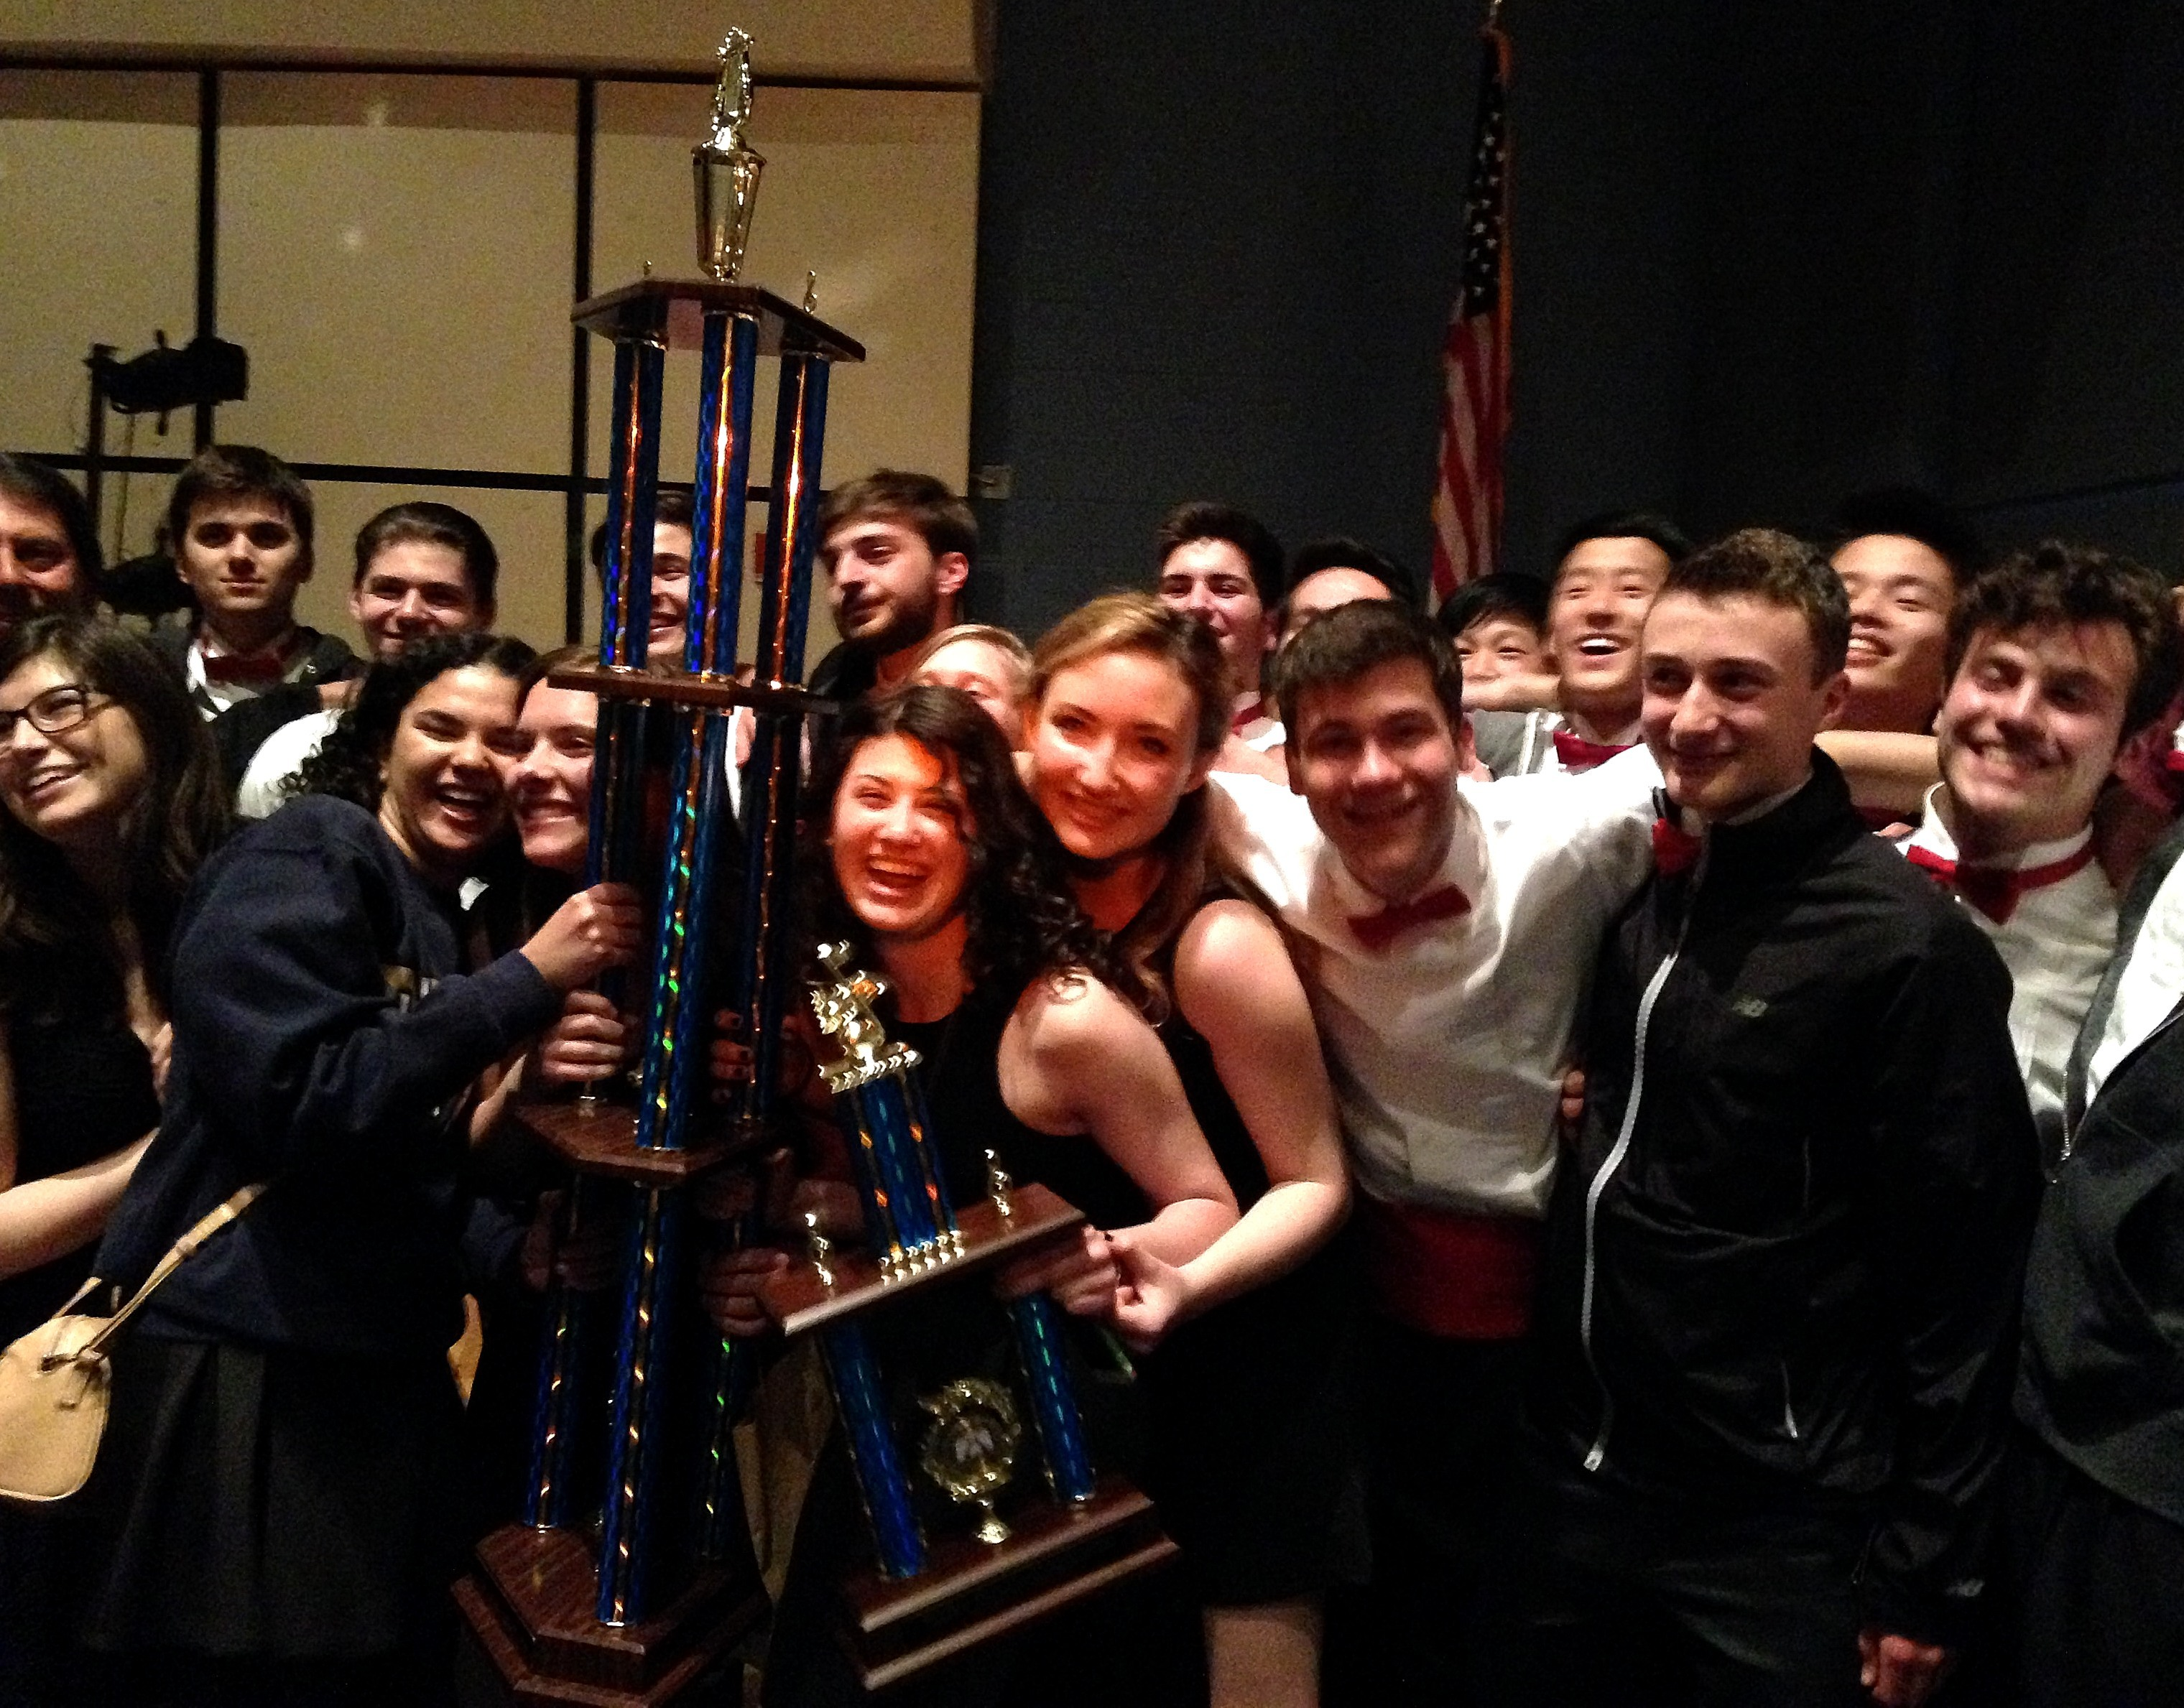 62a704eb96c3c6c4660d_Moonglowers__2015_-_The_Winners_and_Still_Champions.JPG